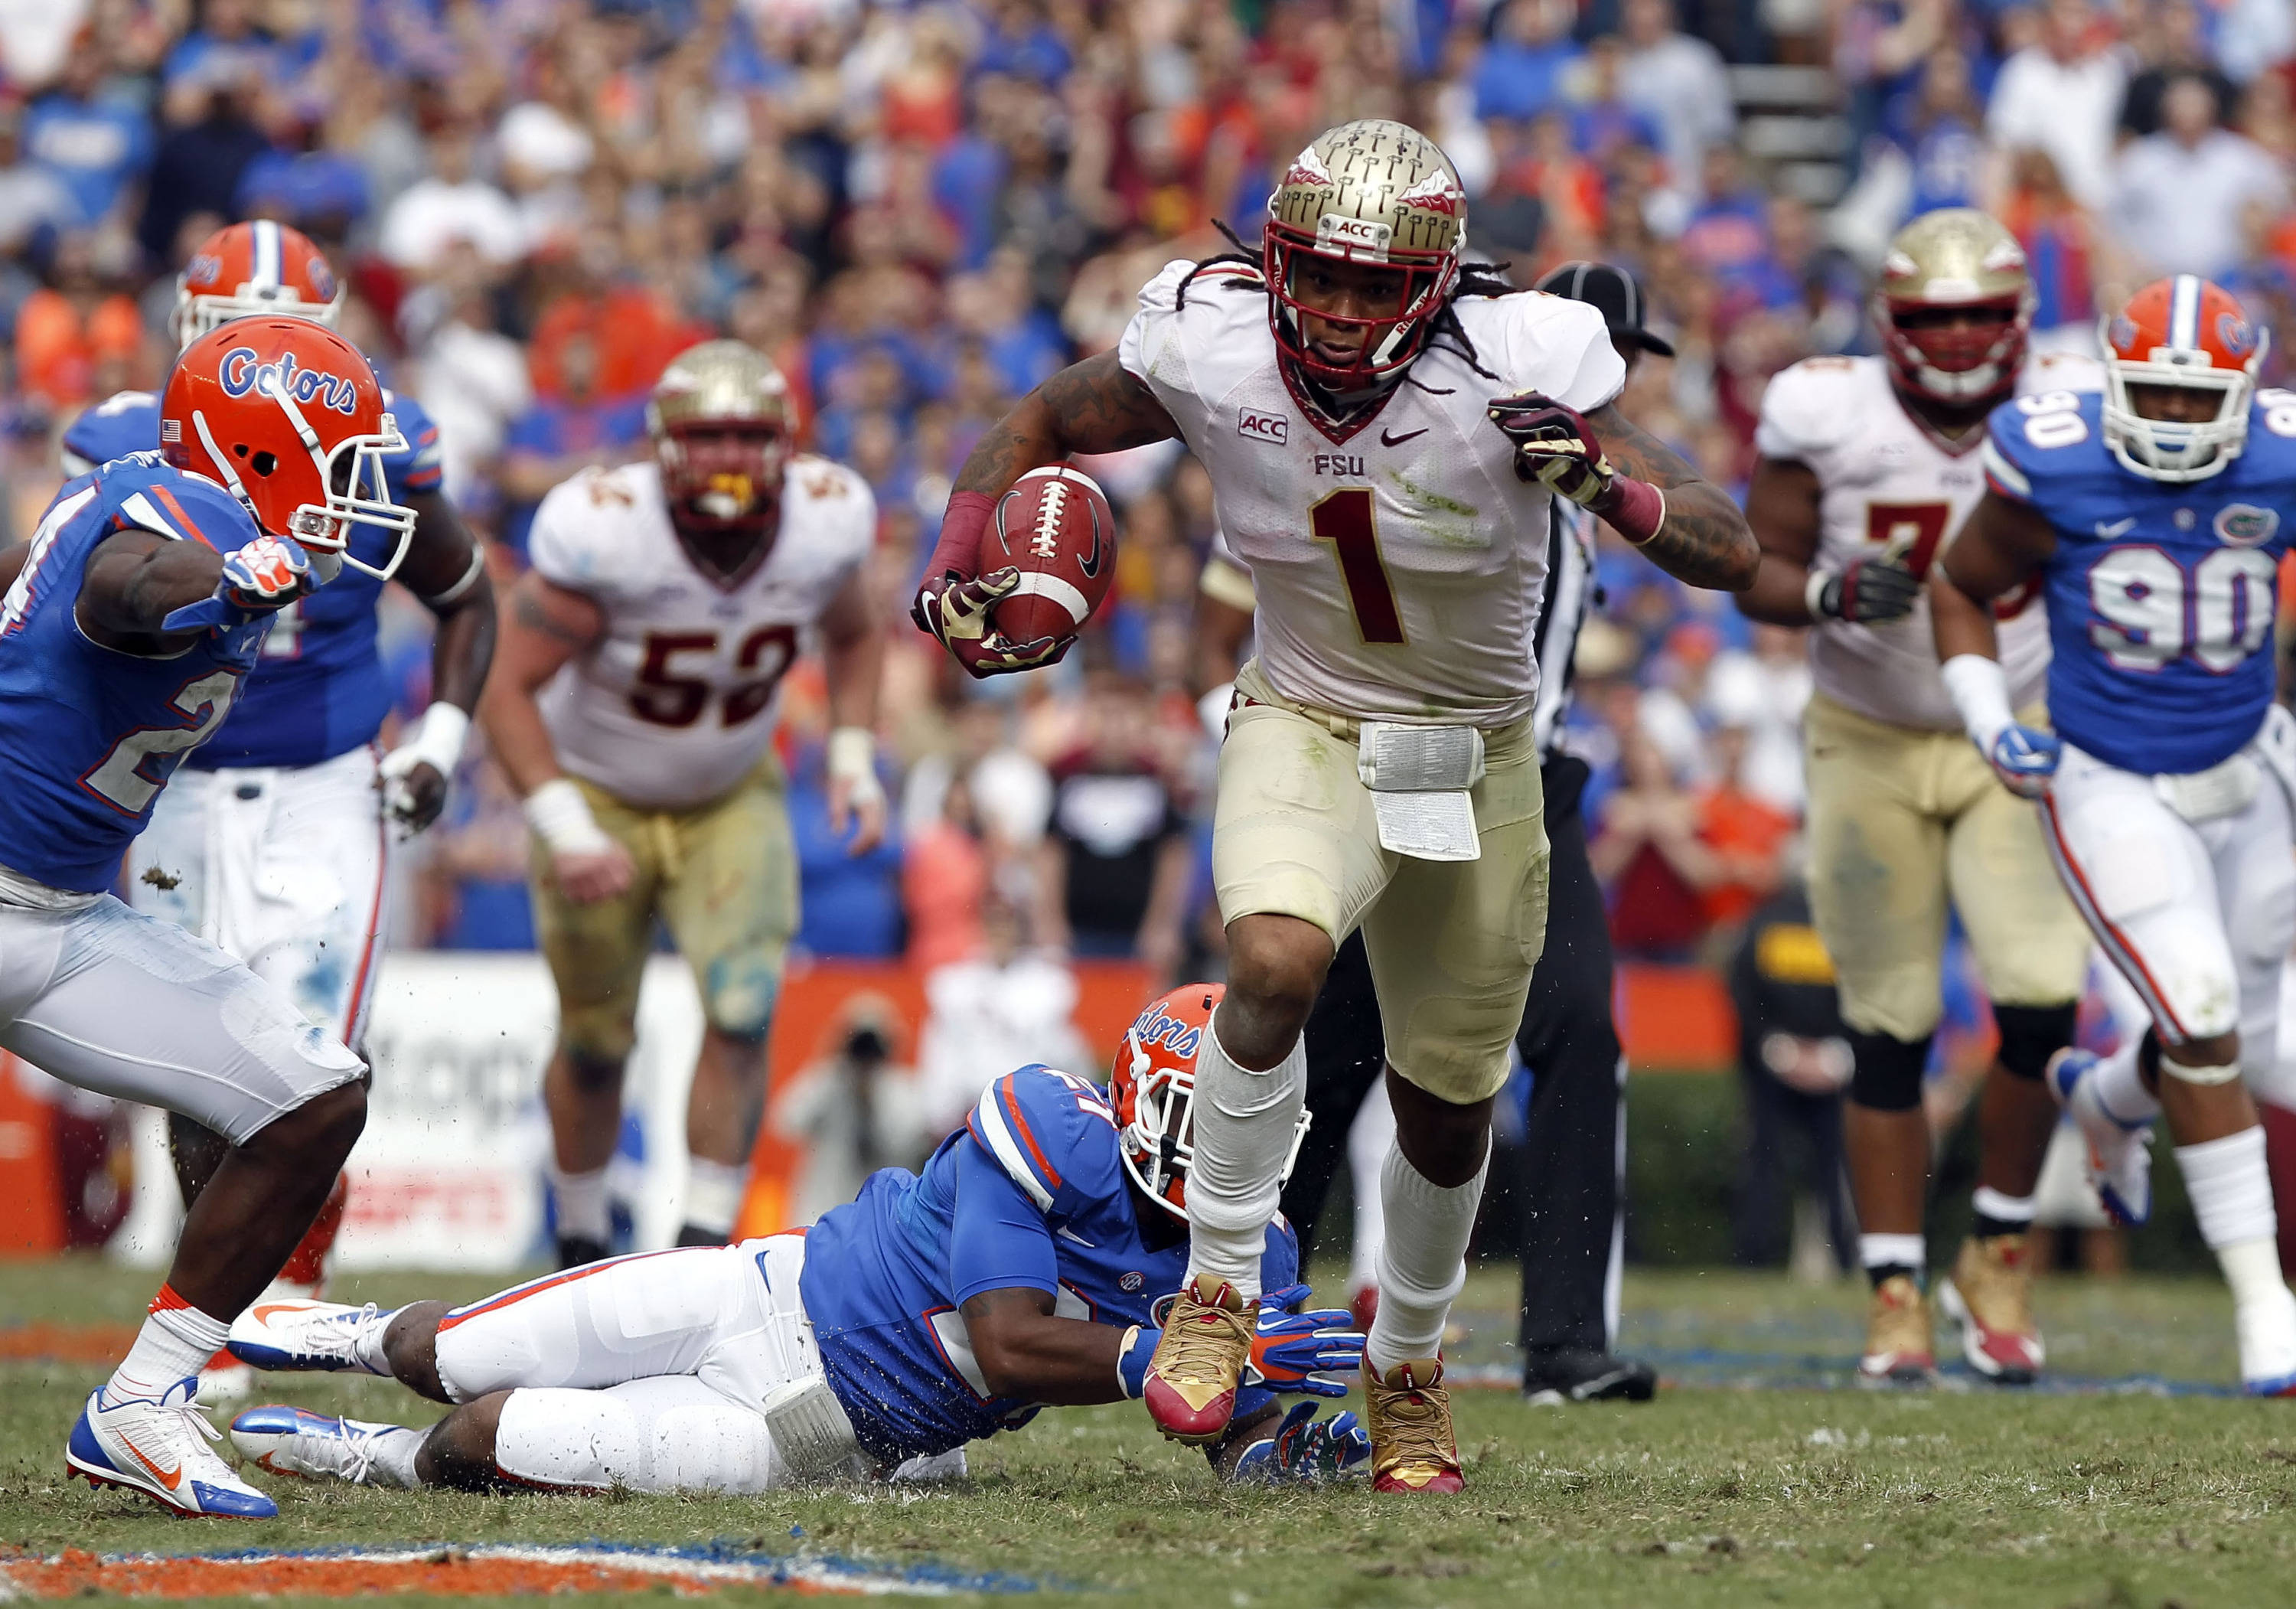 Kelvin Benjamin (1) runs with the ball for a touchdown. Mandatory Credit: Kim Klement-USA TODAY Sports